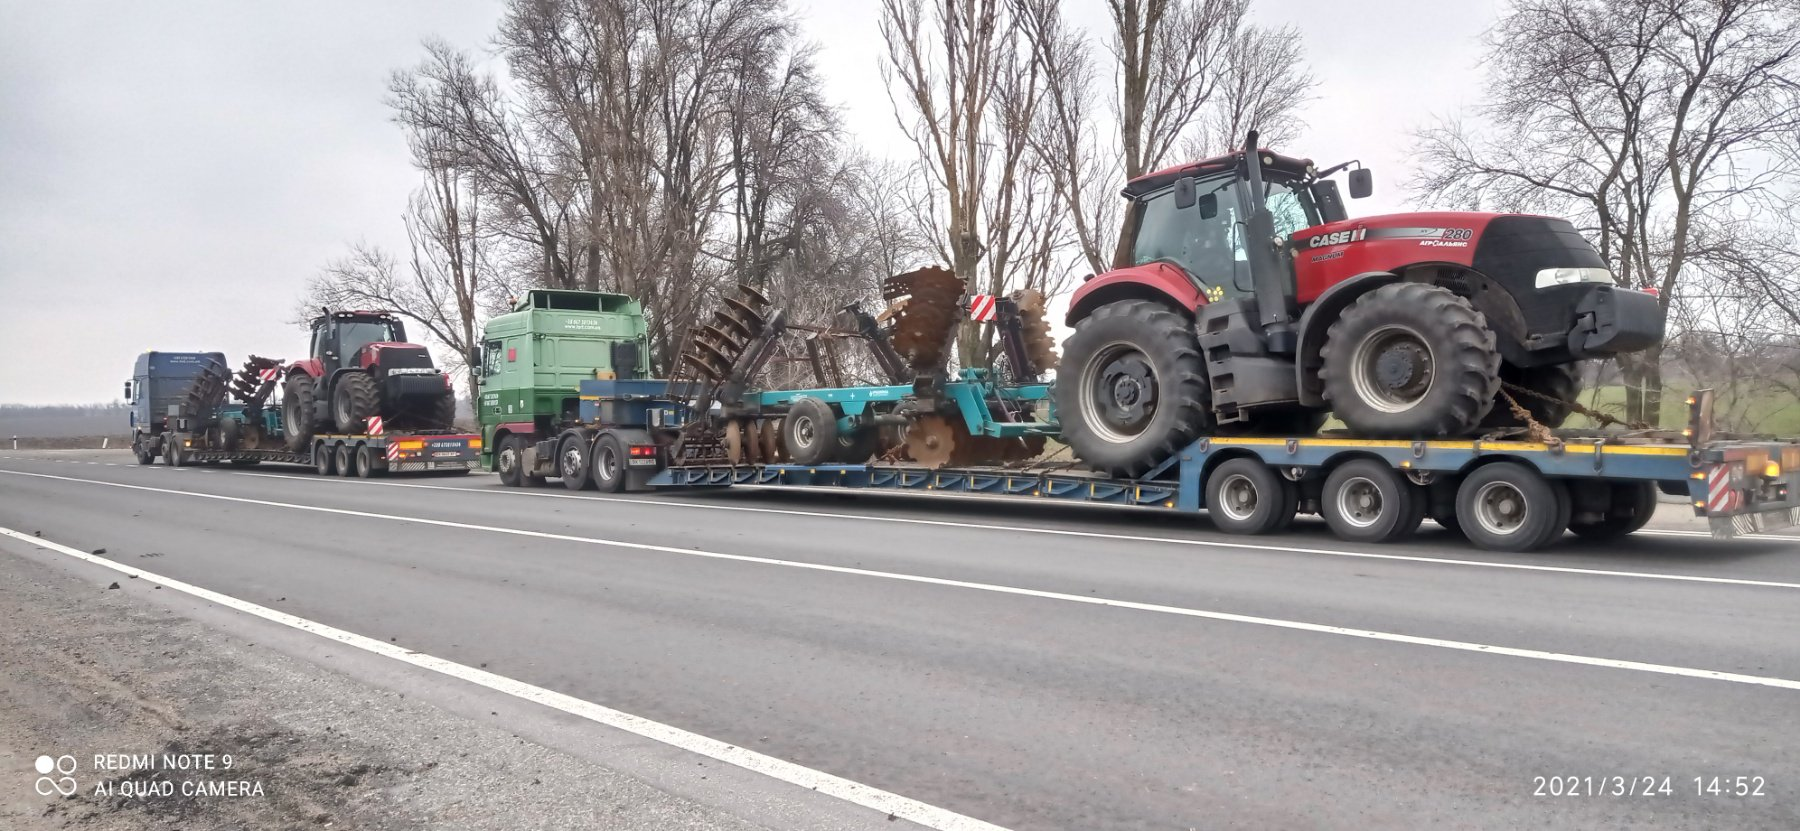 Transport of CASE tractors with harrows